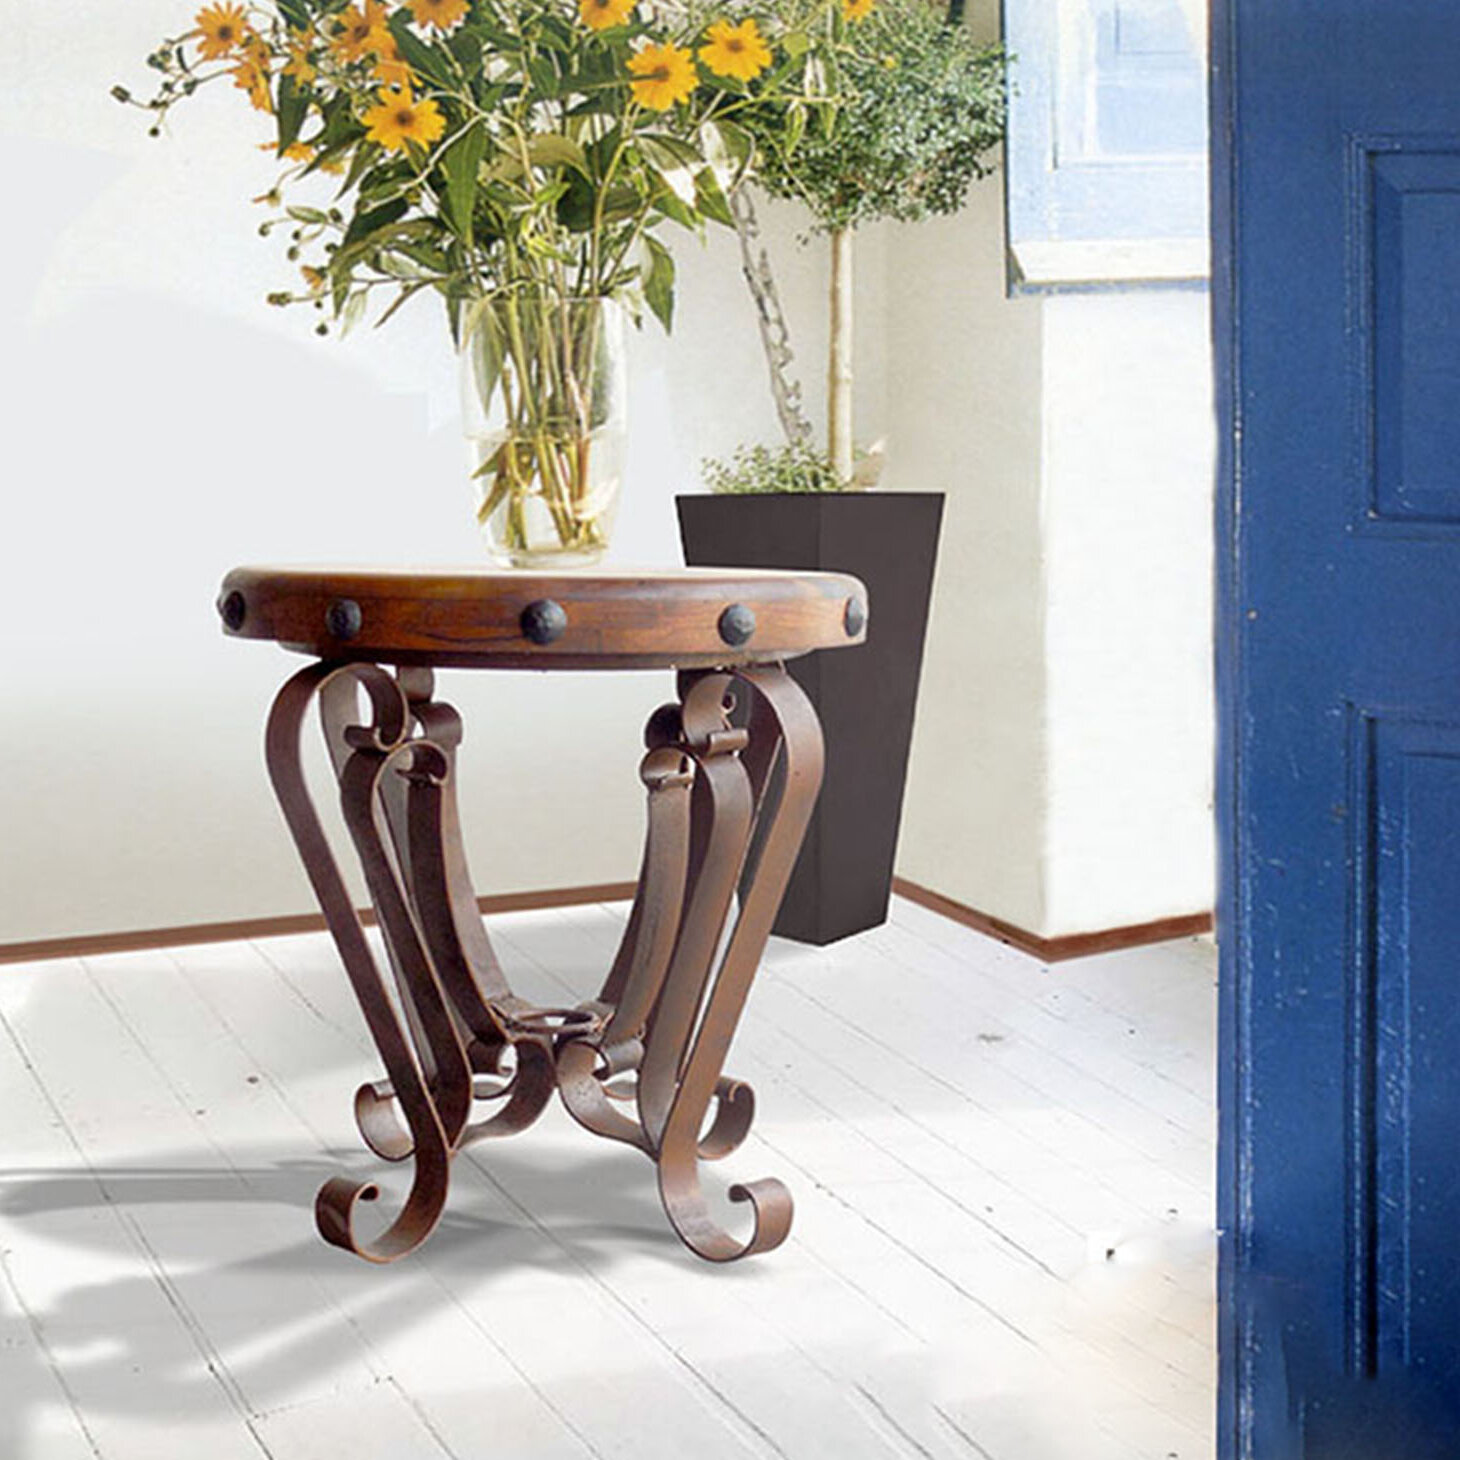 Mexports By Susana Molina Rustic Elegant Occasional Table With Mesquite Top With Nails And Wrought Iron Legs Entry Table Foyer Table End Table Wayfair